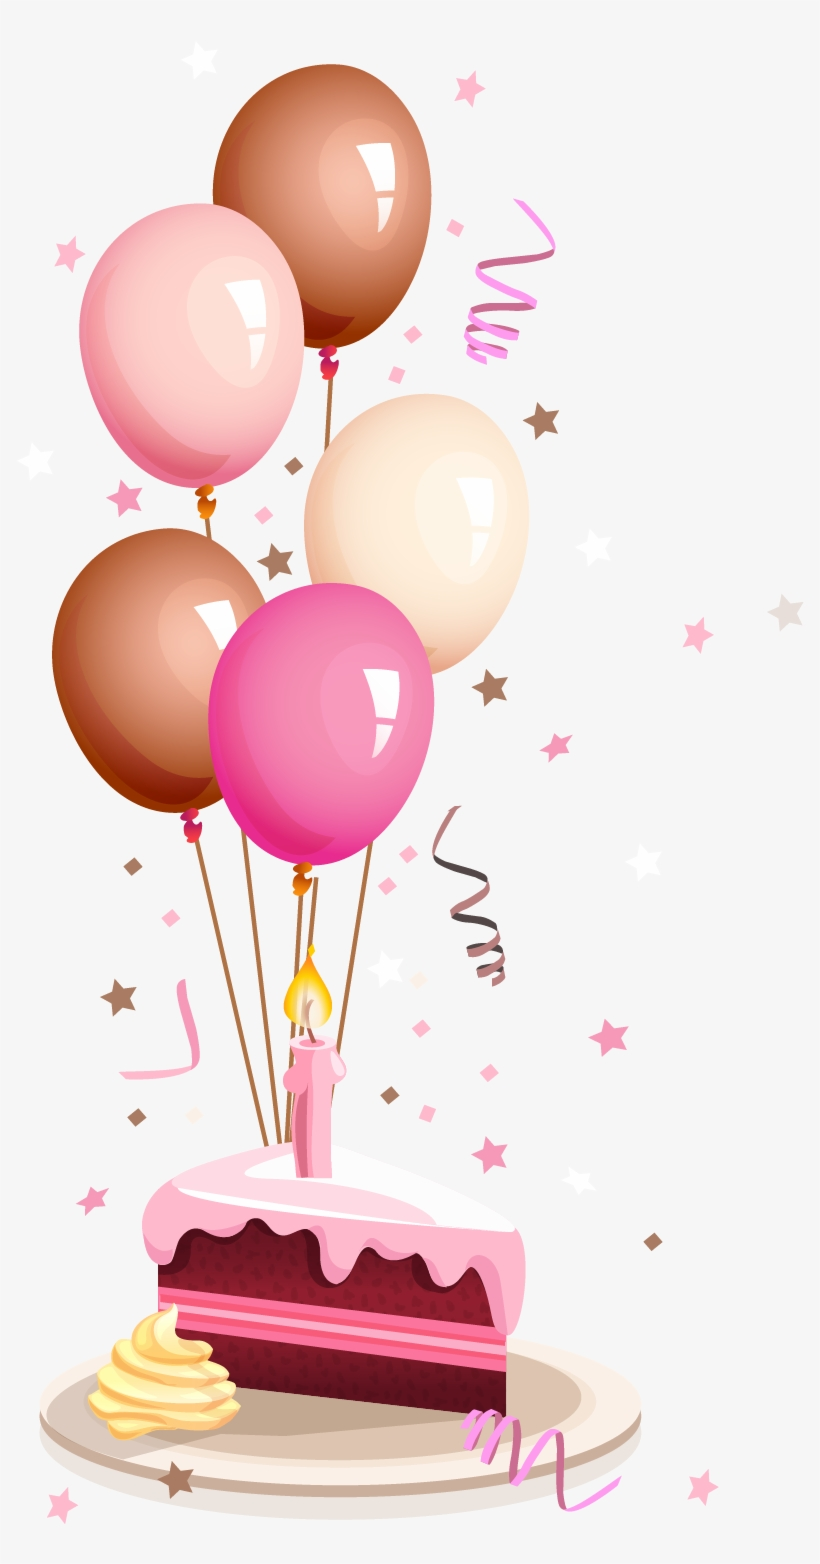 Graphic Royalty Free Download Baloon Vector Cake Balloon - Card Happy Birthday Png, transparent png #7638529